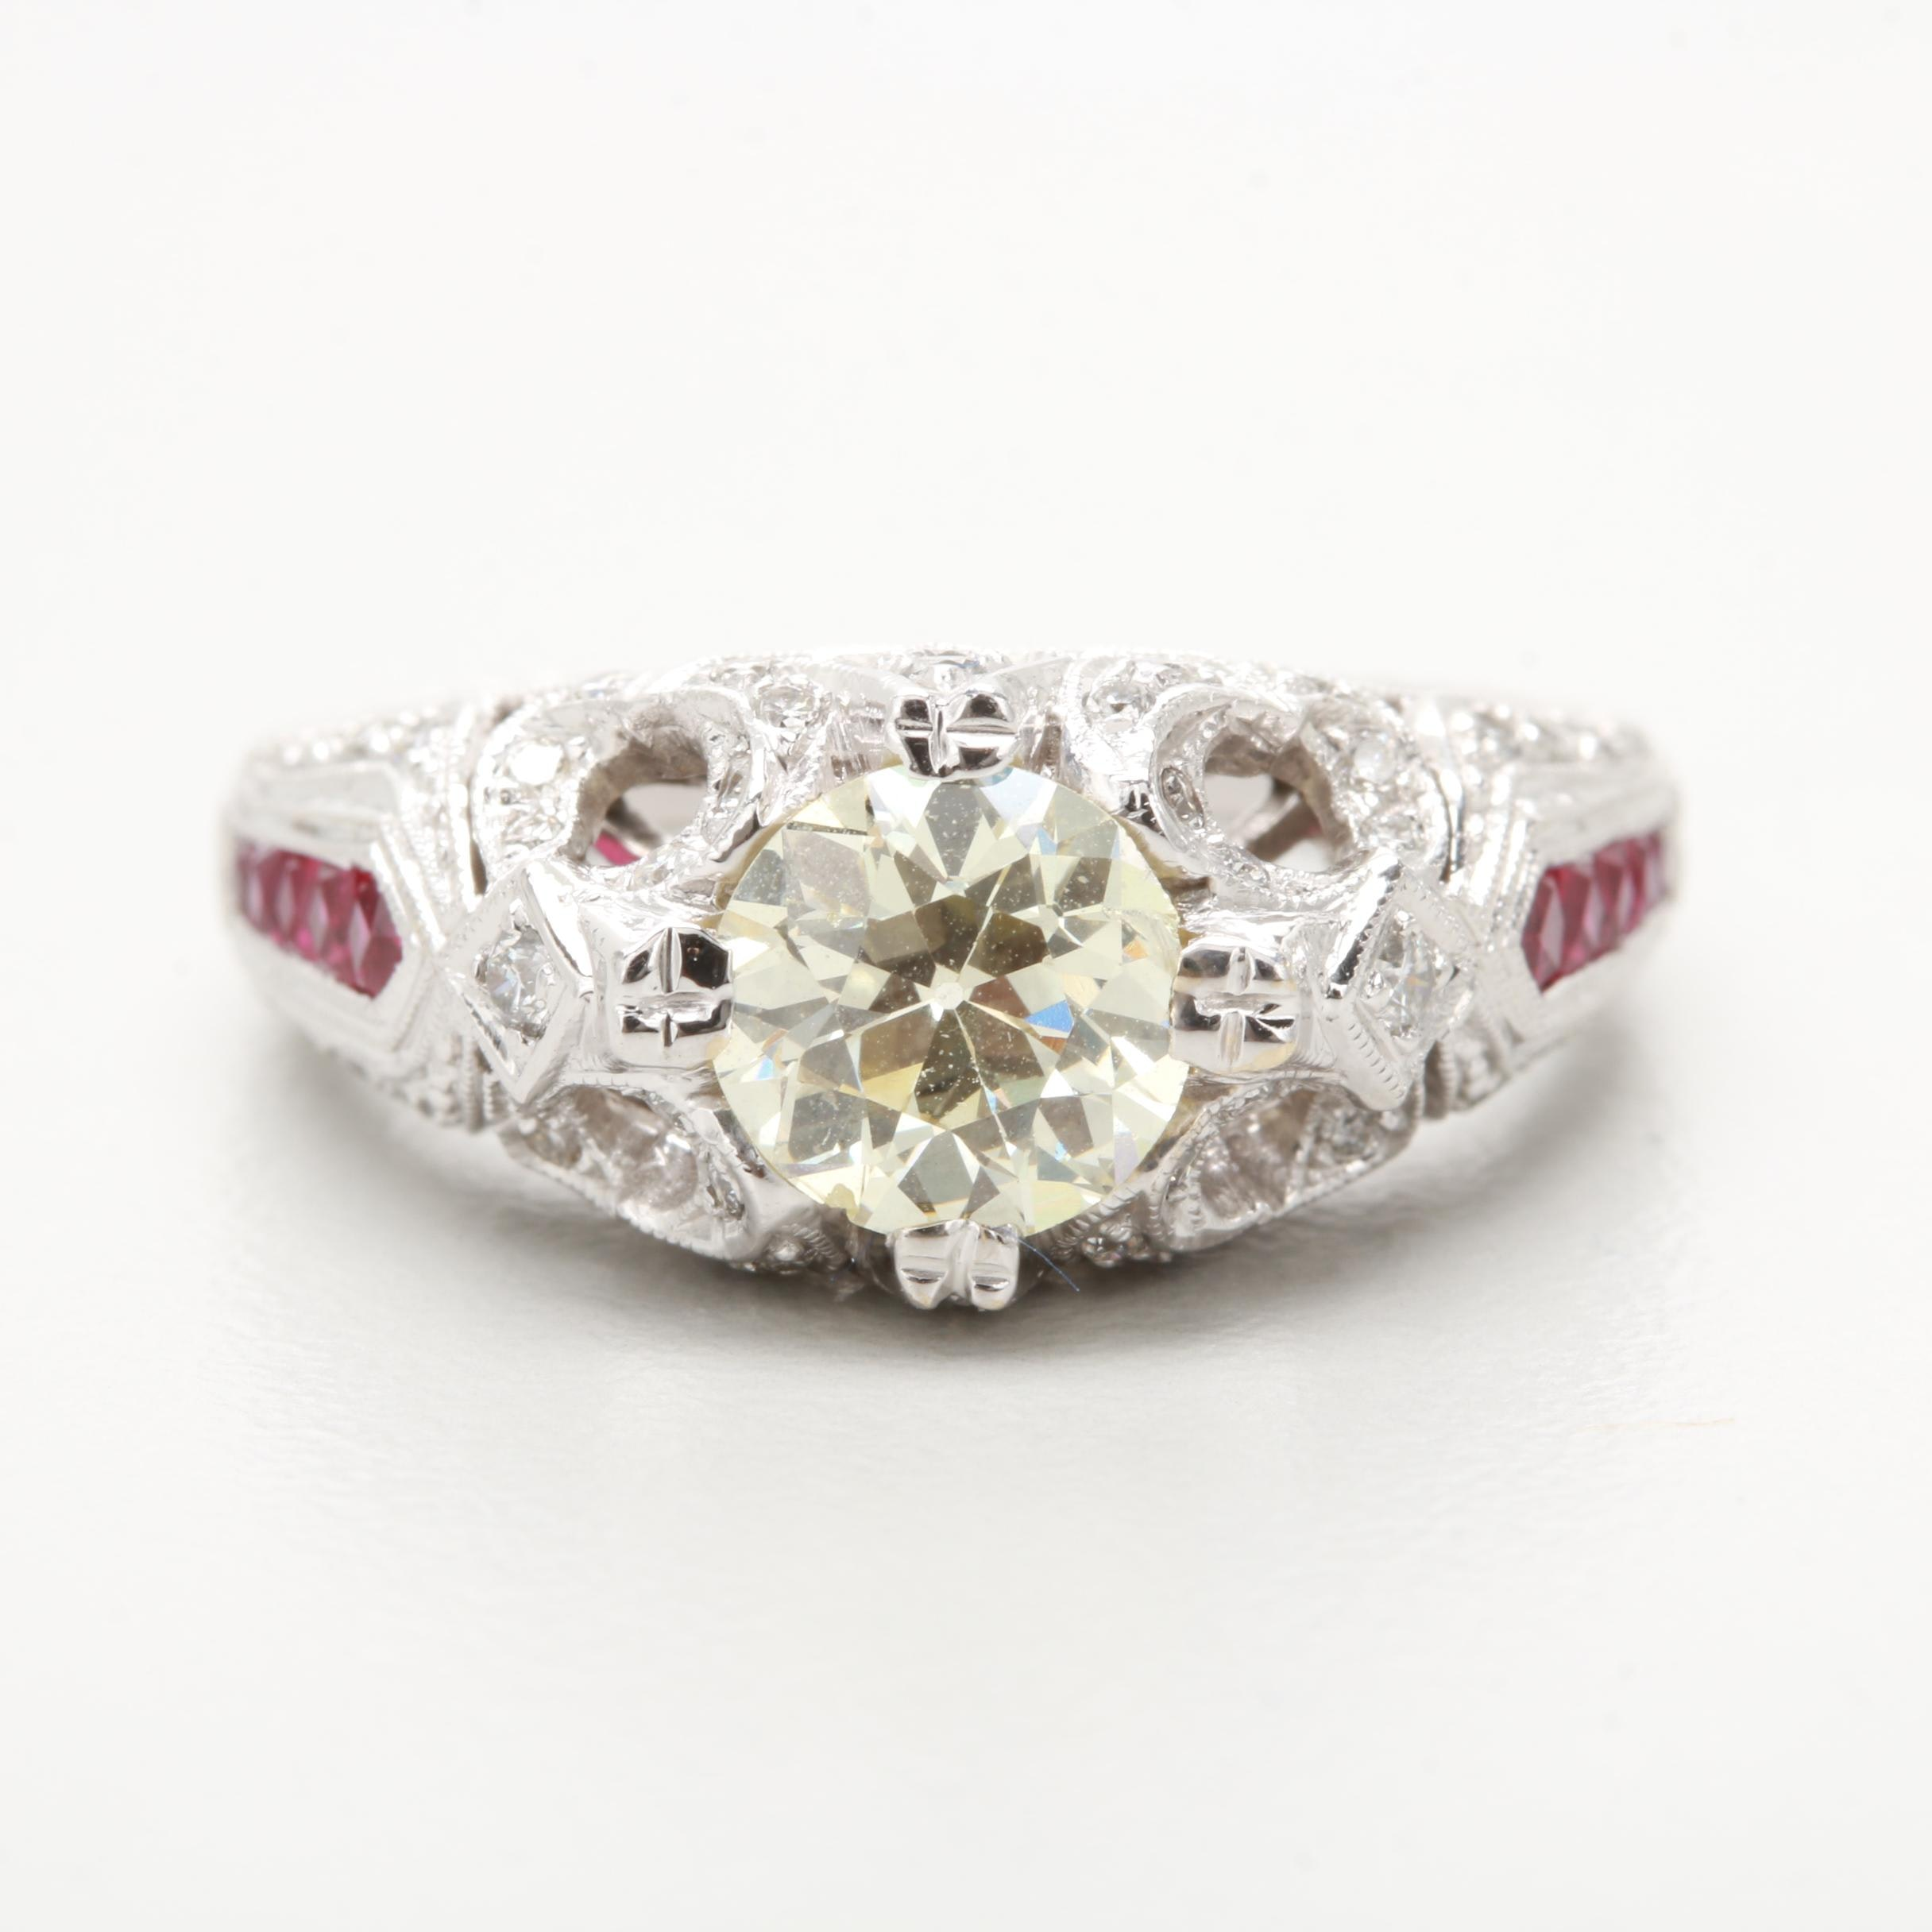 18K White Gold 1.73 CT Diamond and Ruby Ring